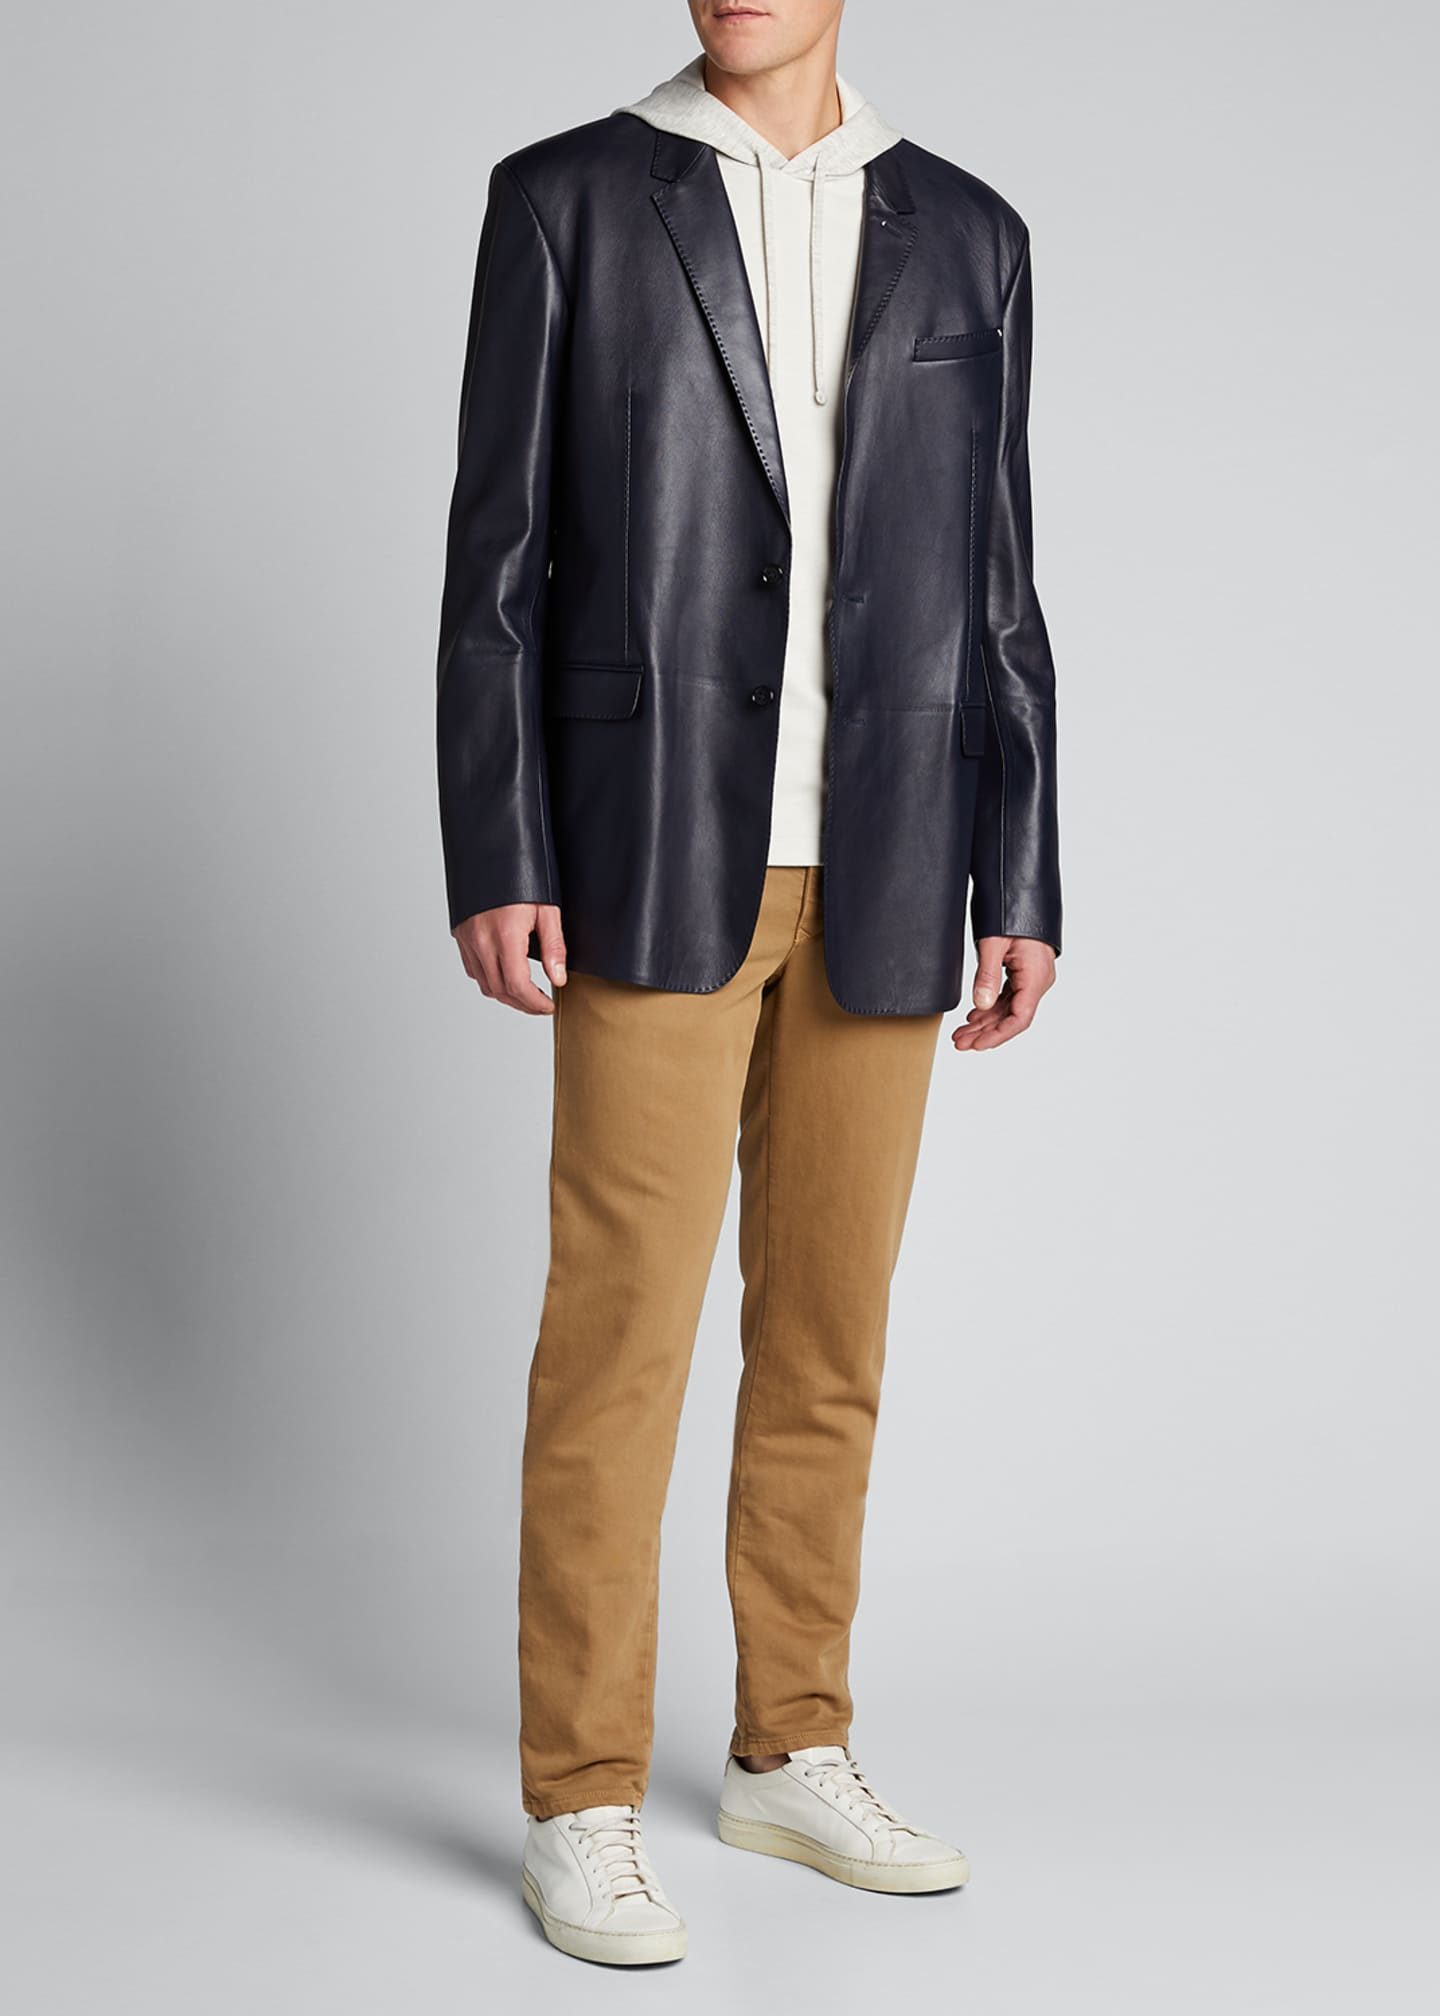 Berluti Men's Leather Two-Button Blazer